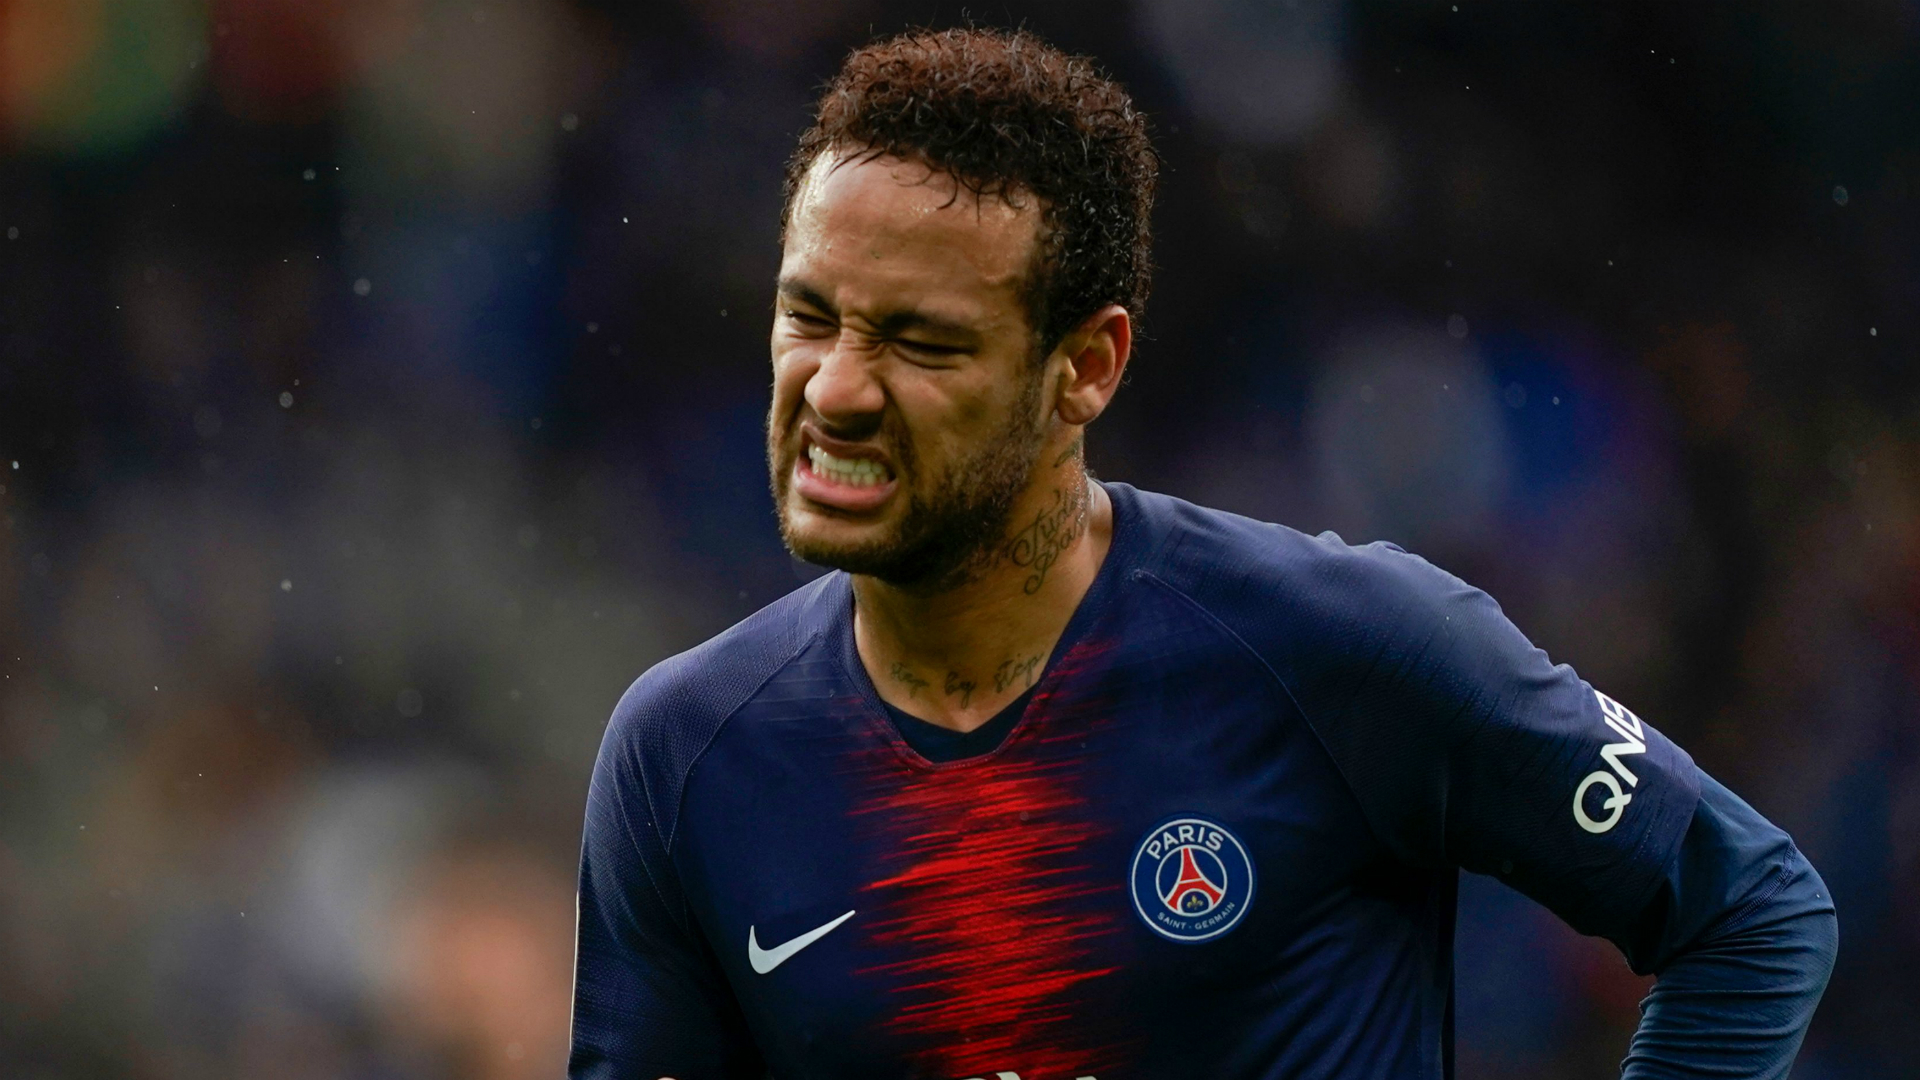 'L'Équipe': PSG will sell Neymar for the right price